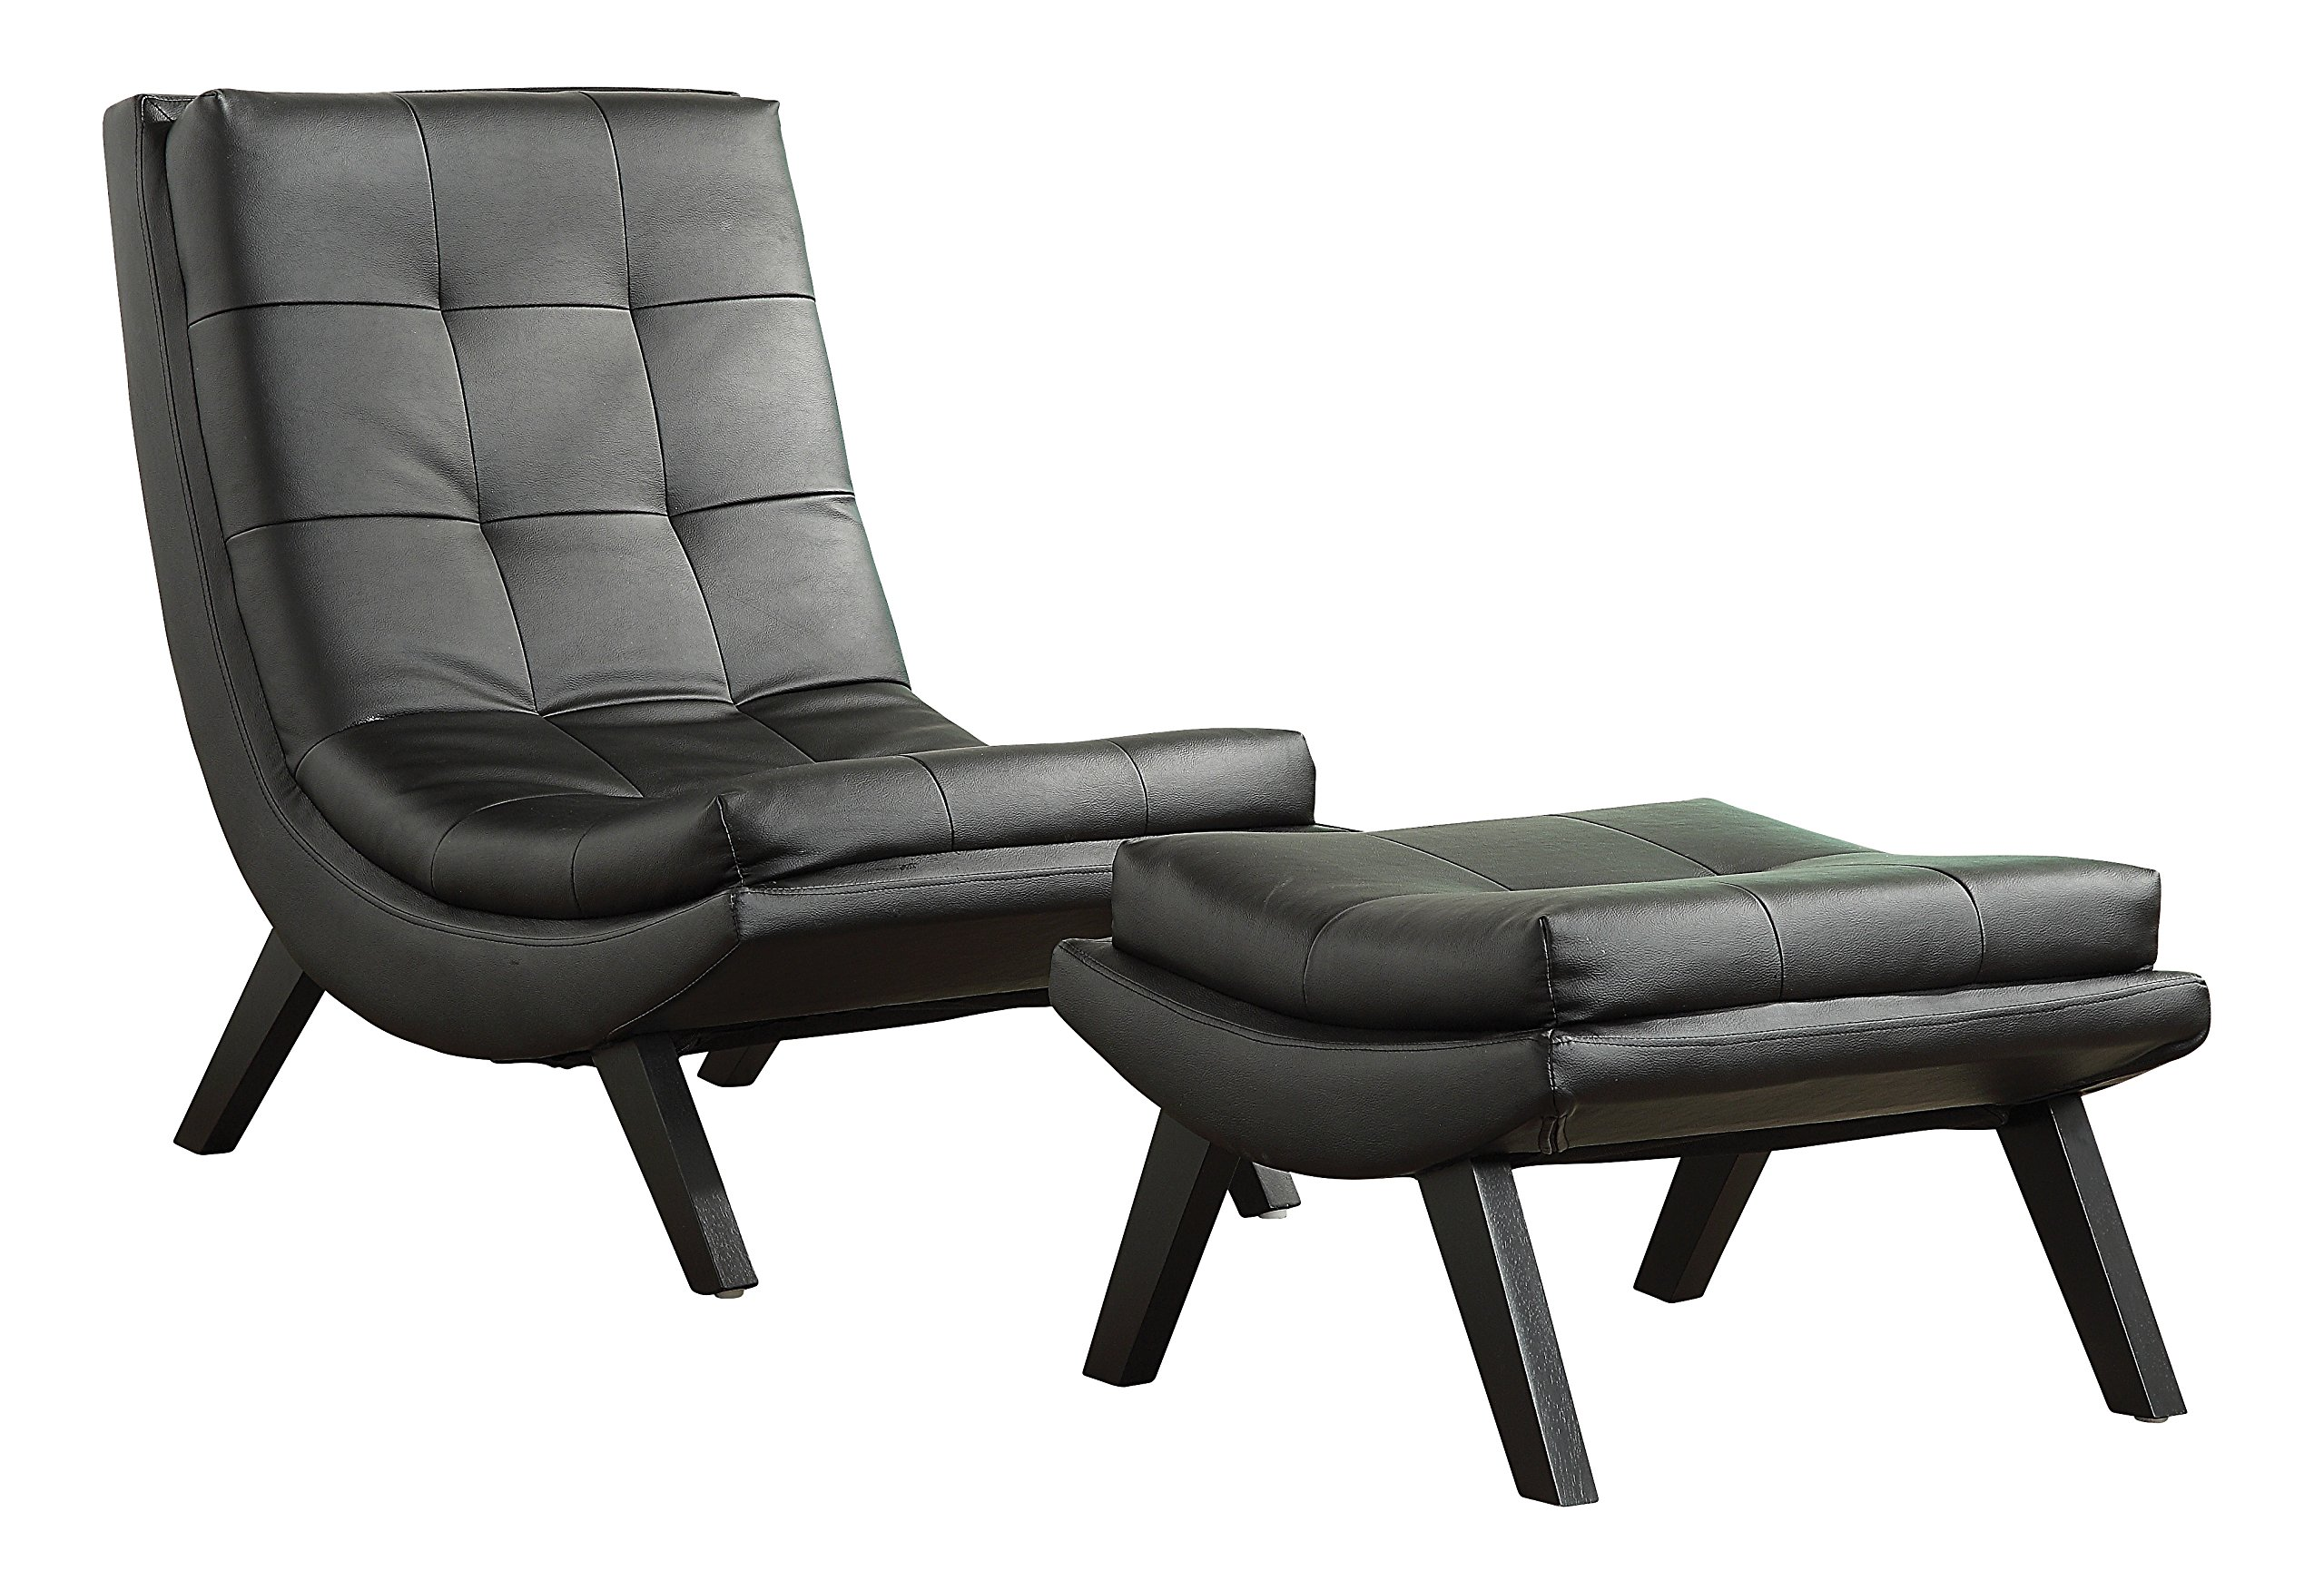 Get Quotations · AVE SIX Tustin Faux Leather Lounge Chair And Ottoman Set  With Solid Wood Legs, Black